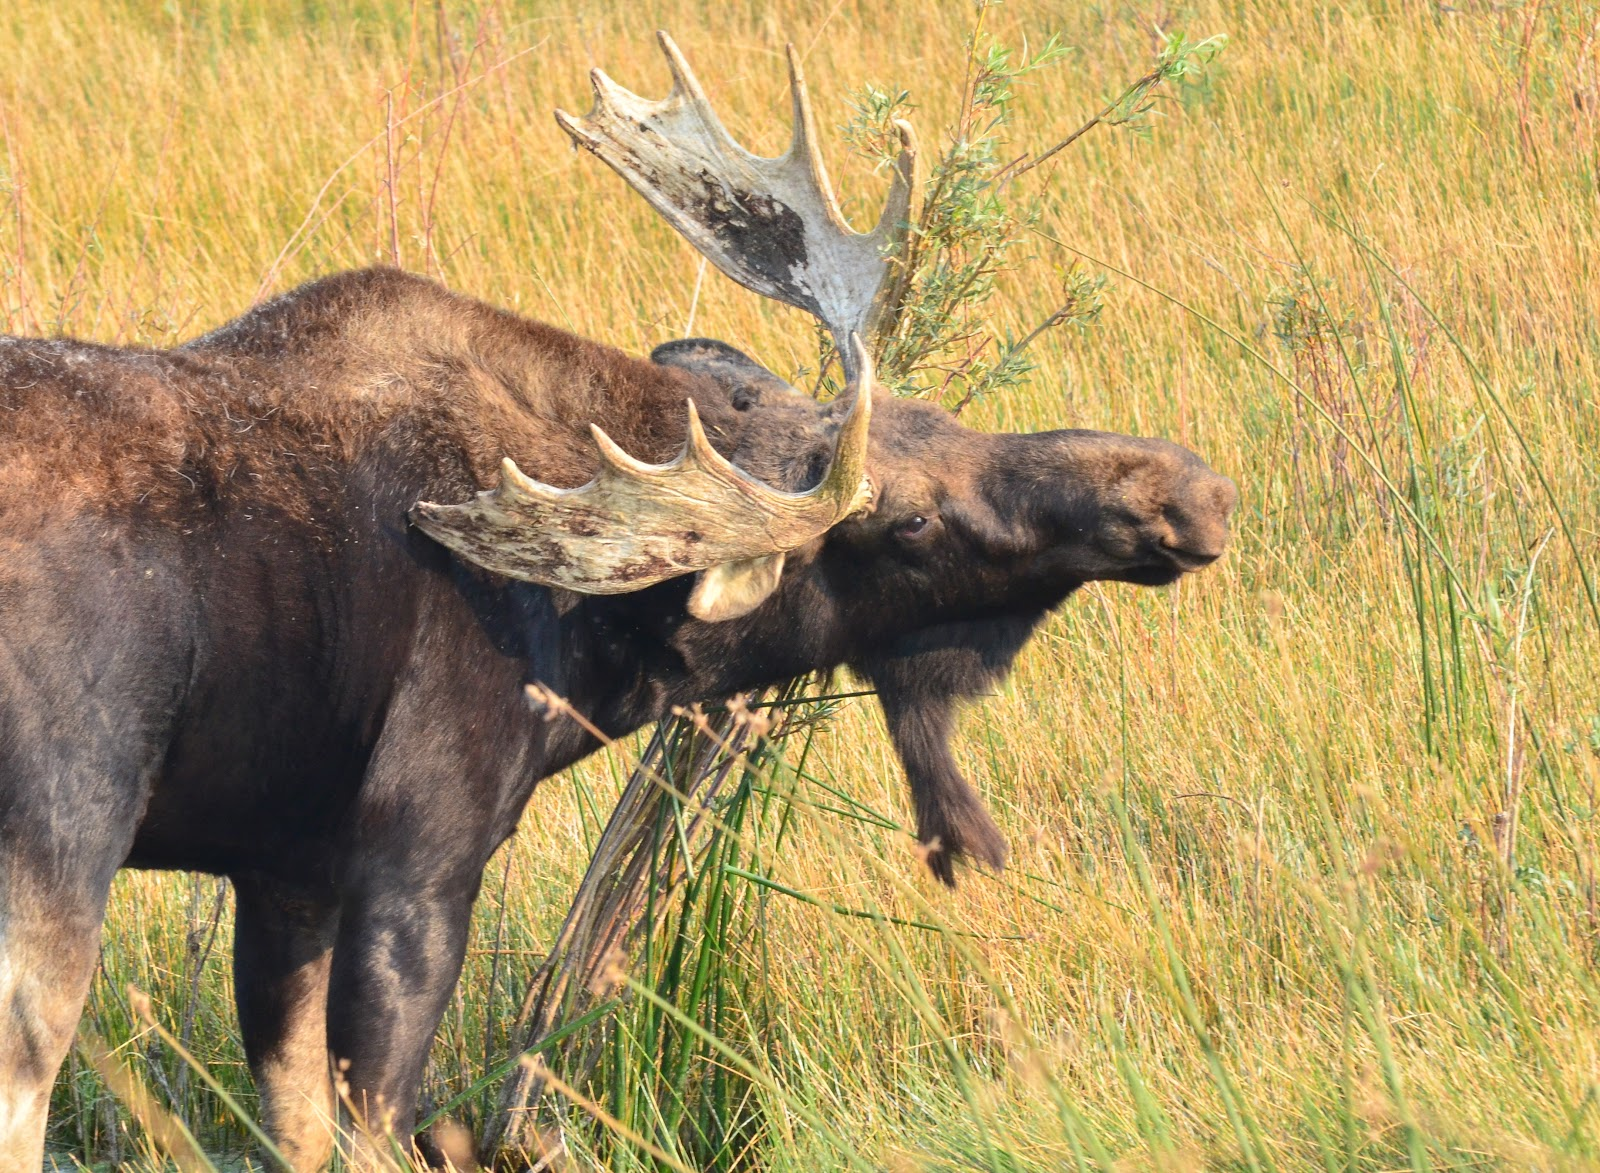 Average Weight Of Bull Moose http://mktest.net/LineName/bull-moose-fight